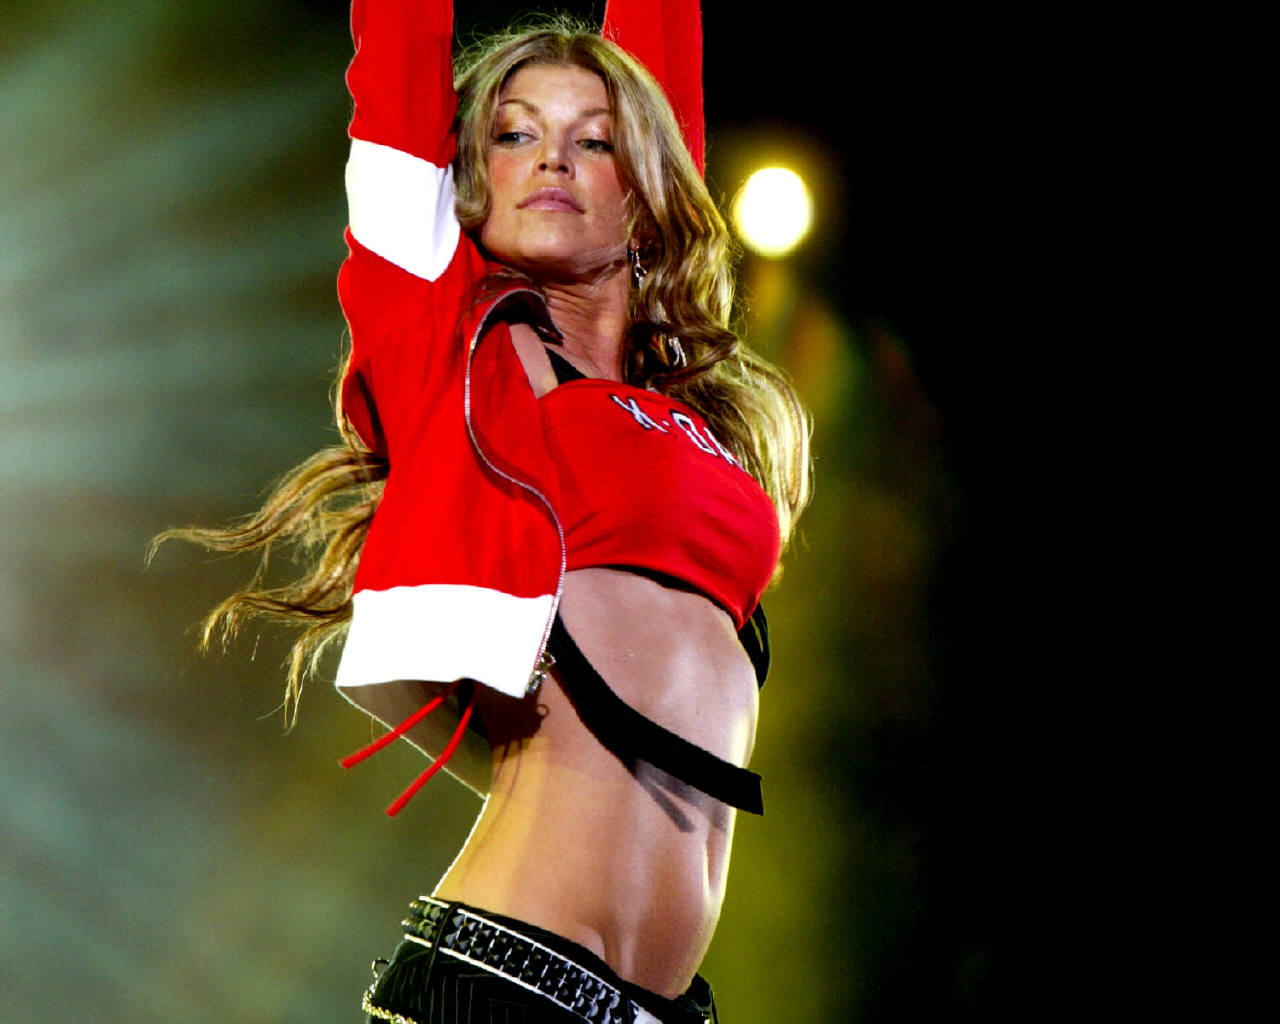 Fergie images Fergie HD wallpaper and background photos (171361)